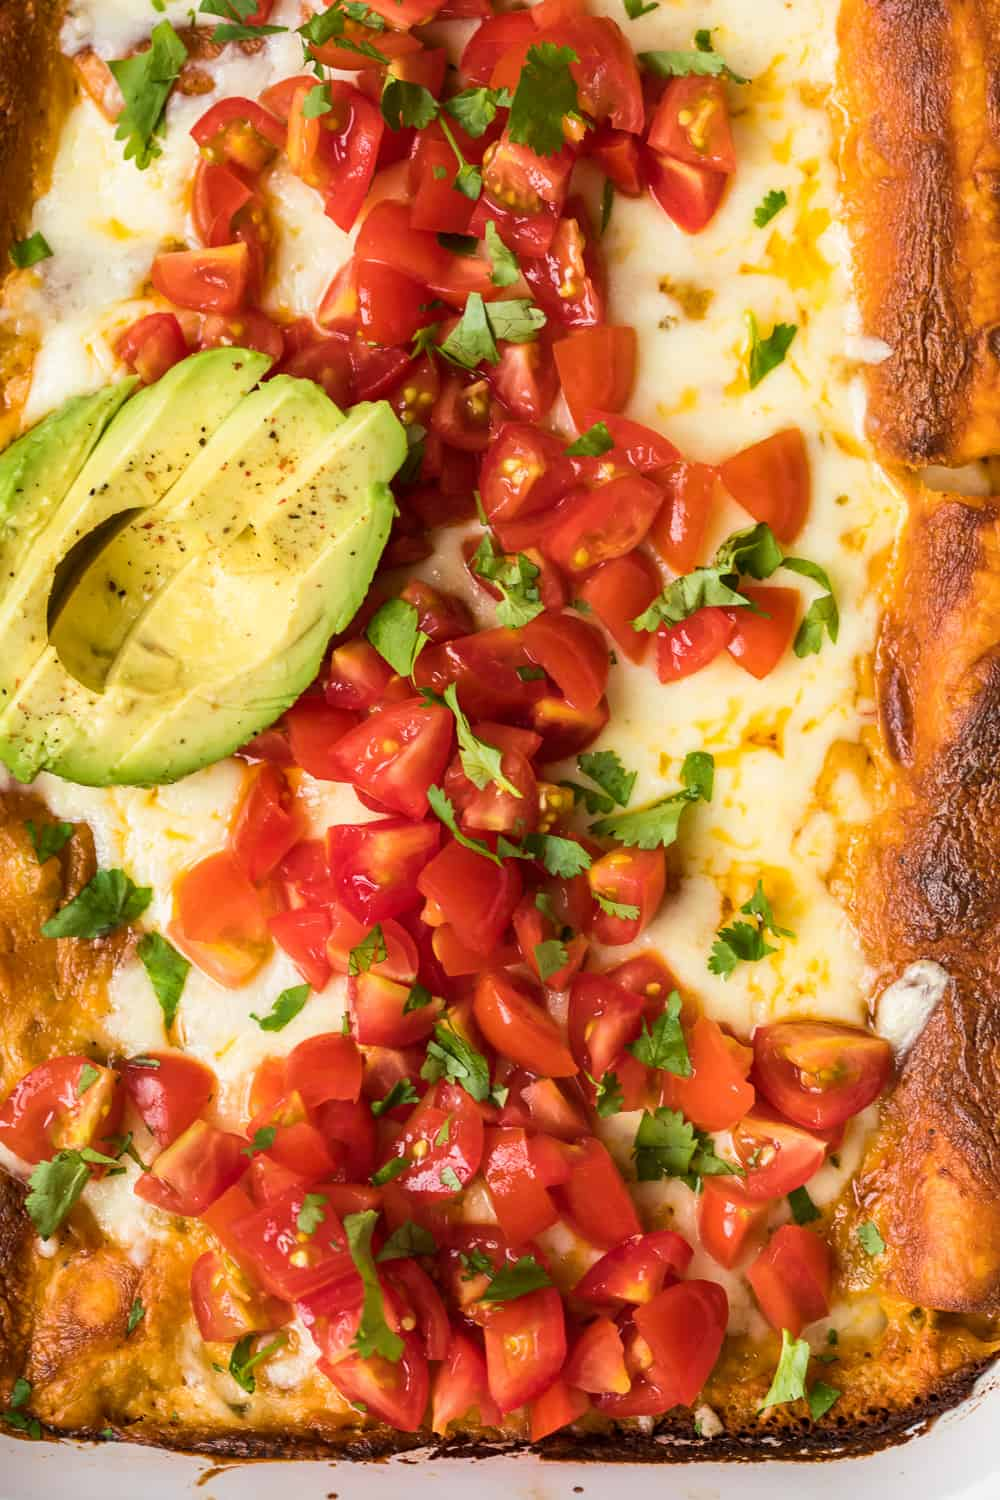 avocado and chopped tomatoes on top of enchiladas